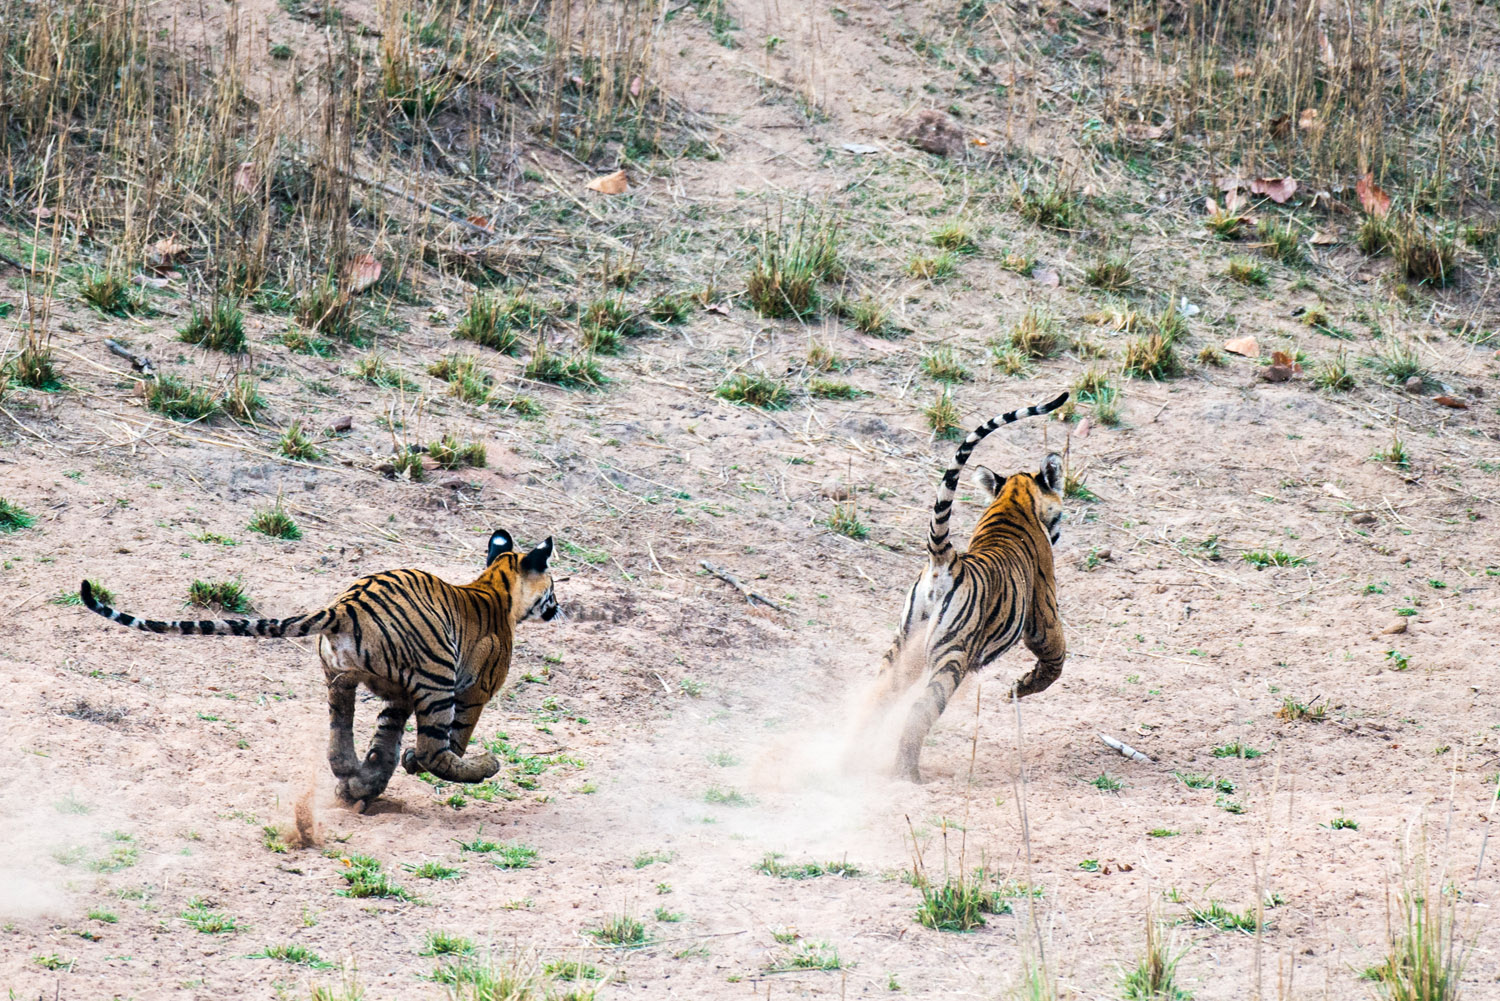 Bengal tiger cubs chasing each other, Bandhavgarh National Park, Madhya Pradesh, India